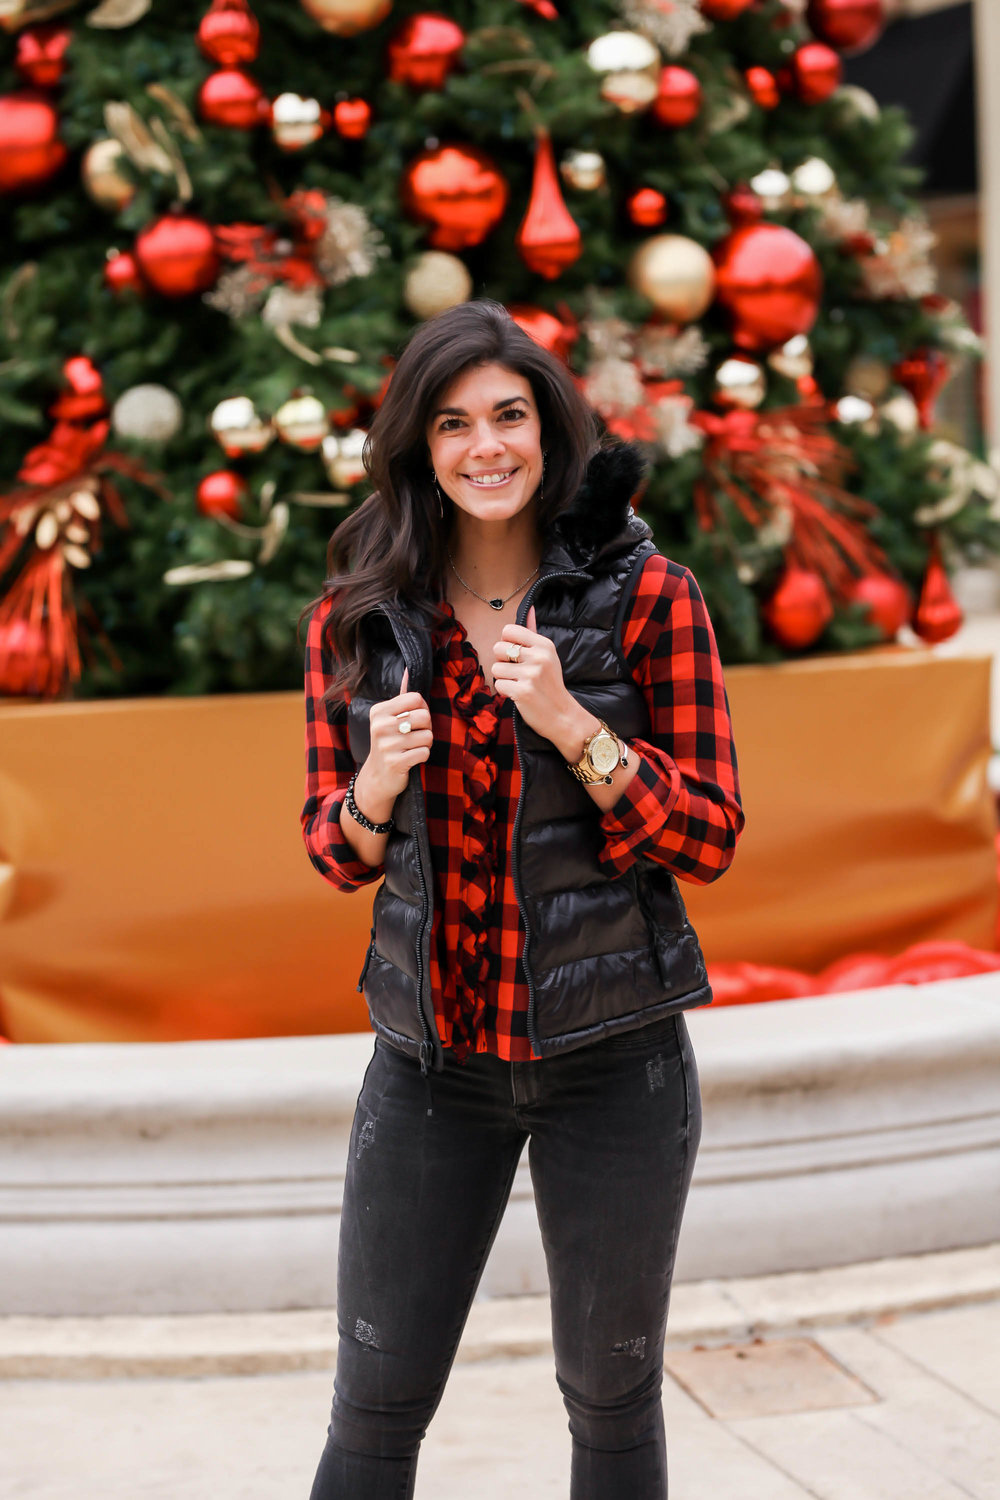 Black-Denim-Puffer-Vest-Buffalo-Plaid-Casual-Chic-Winter-Style.jpg